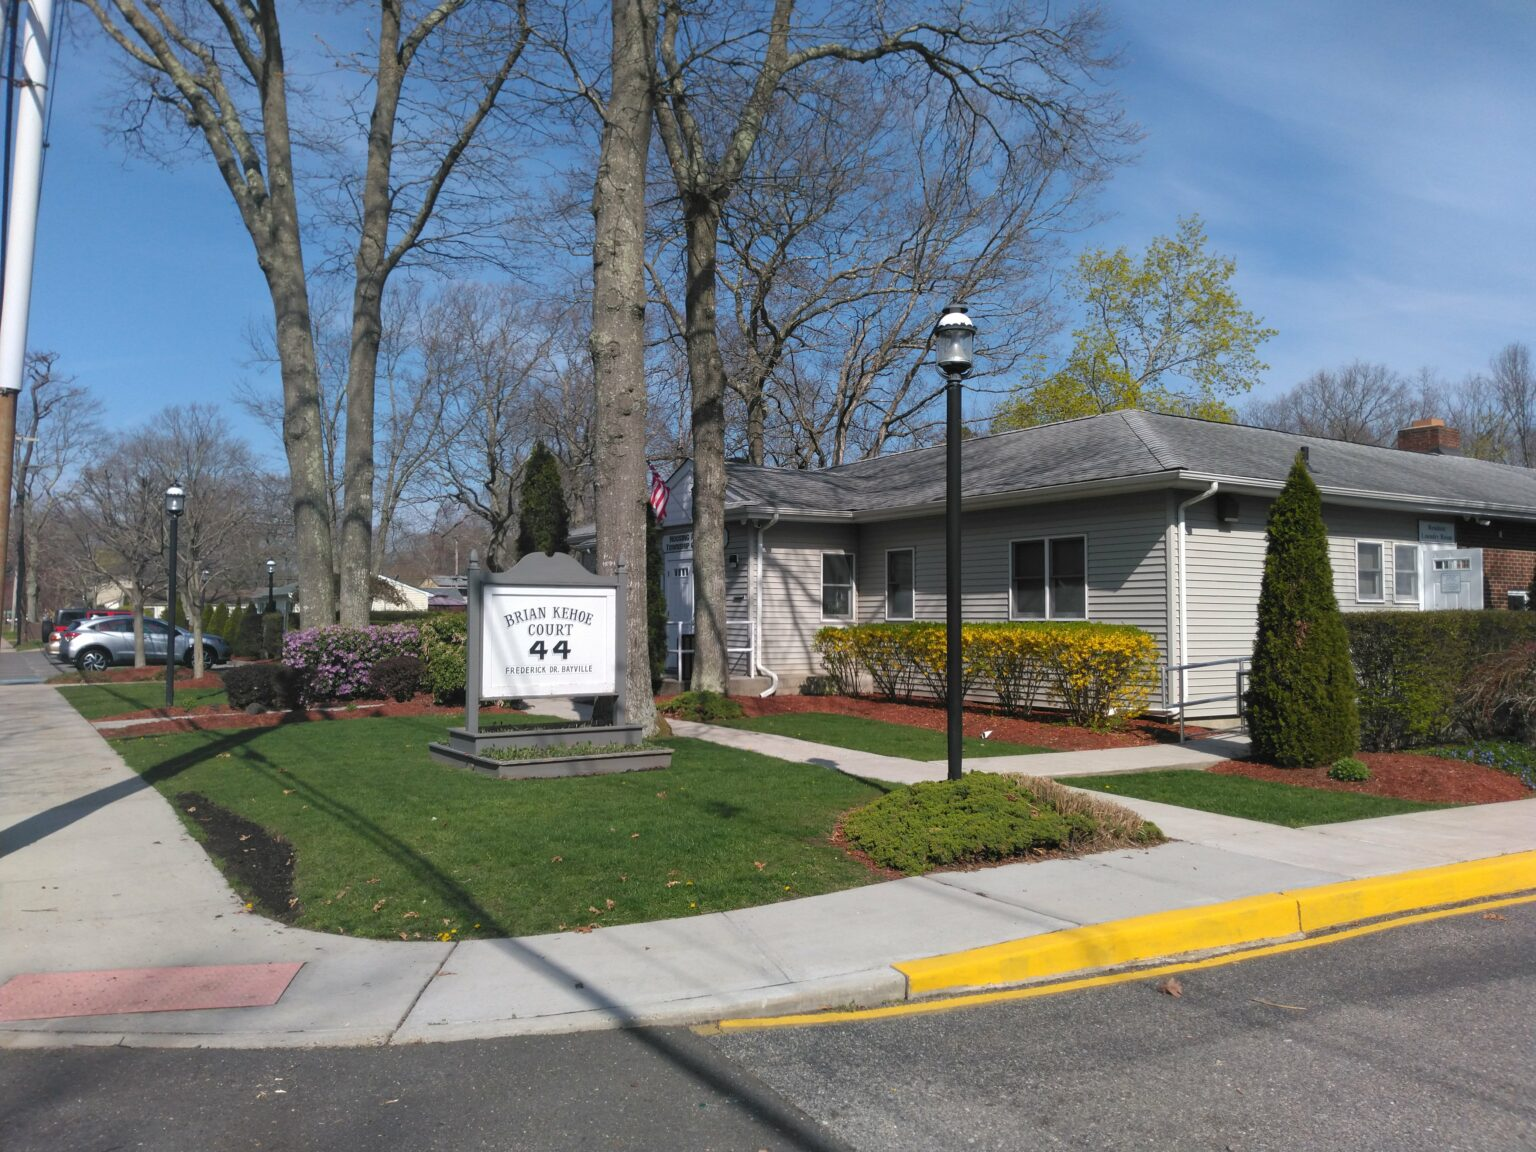 Image of The Berkeley Housing Authority in Bayville, New Jersey